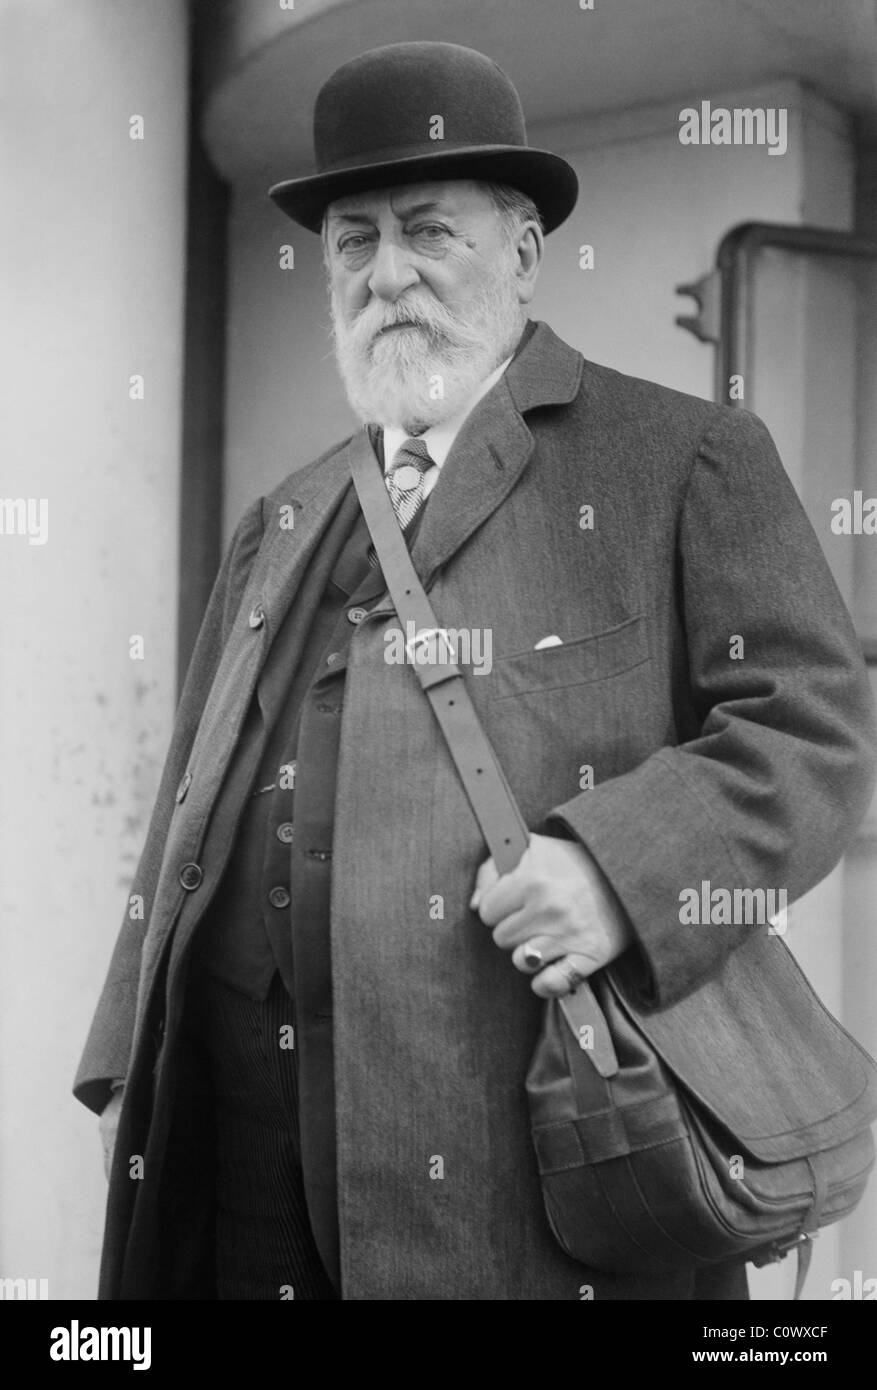 Vintage photo circa 1915 of French composer, organist, conductor and pianist Camille Saint-Saens (1835 - 1921). - Stock Image